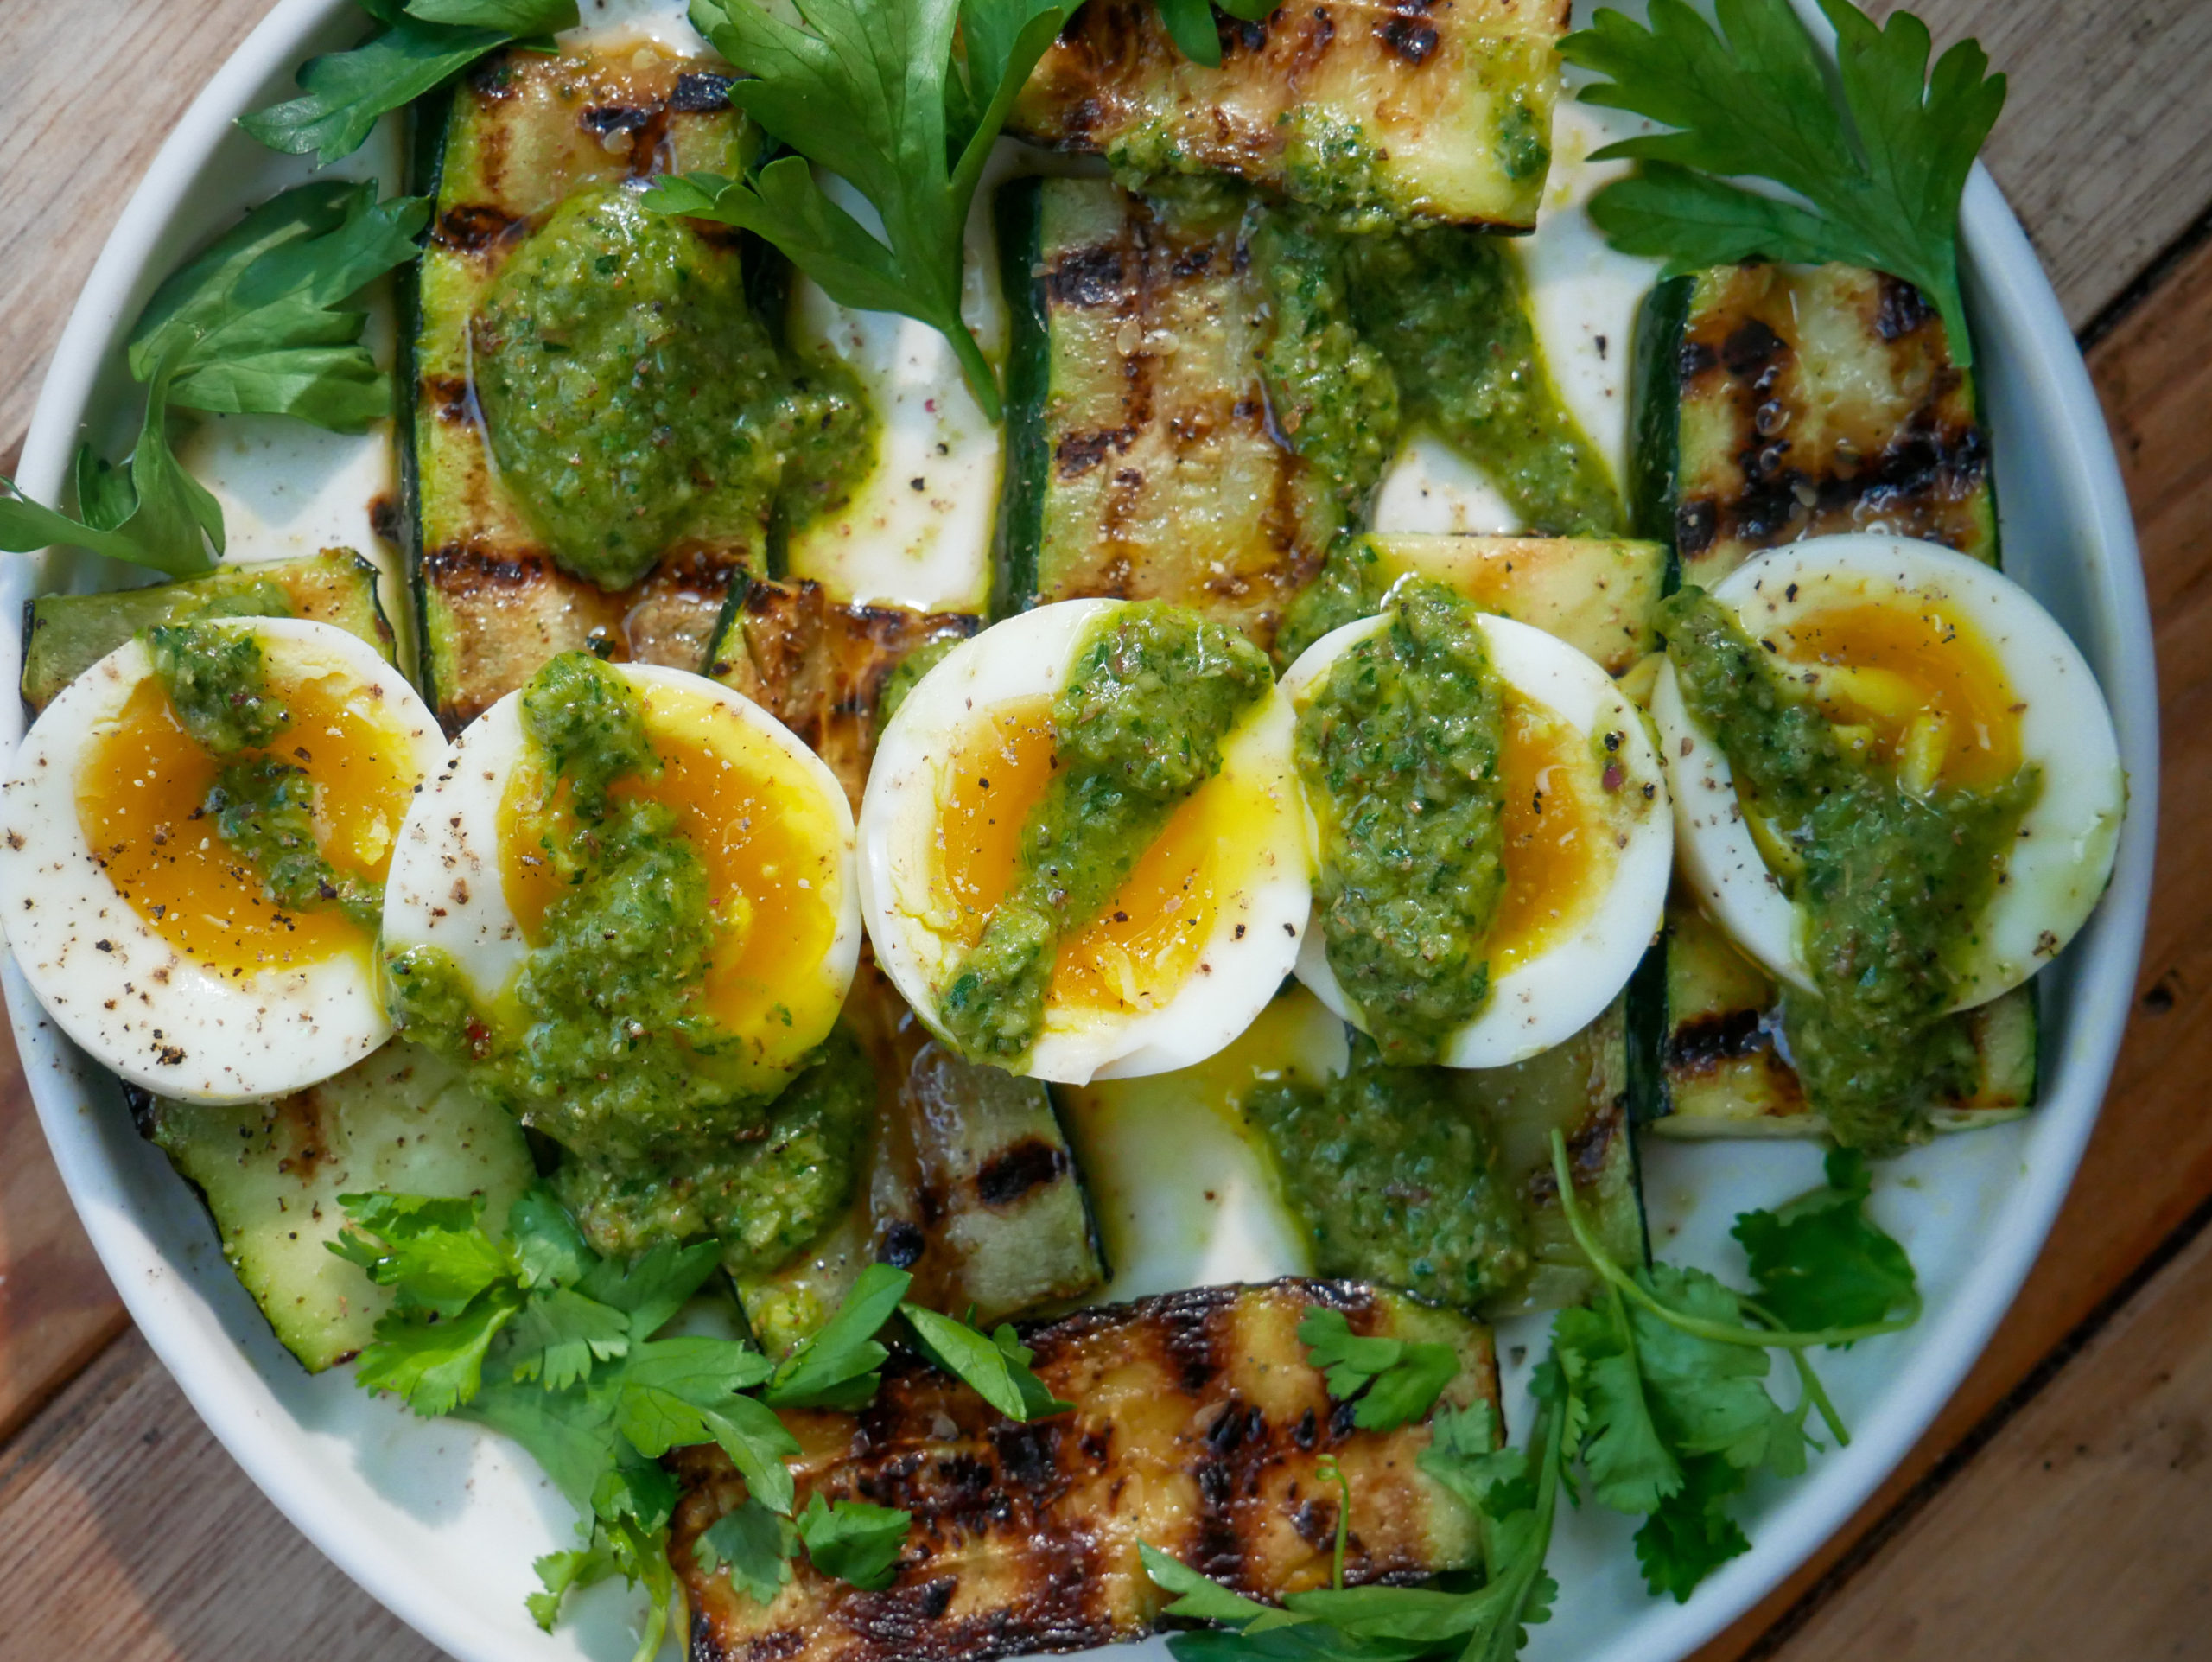 avocado chimichurri with soft boiled eggs and zucchini